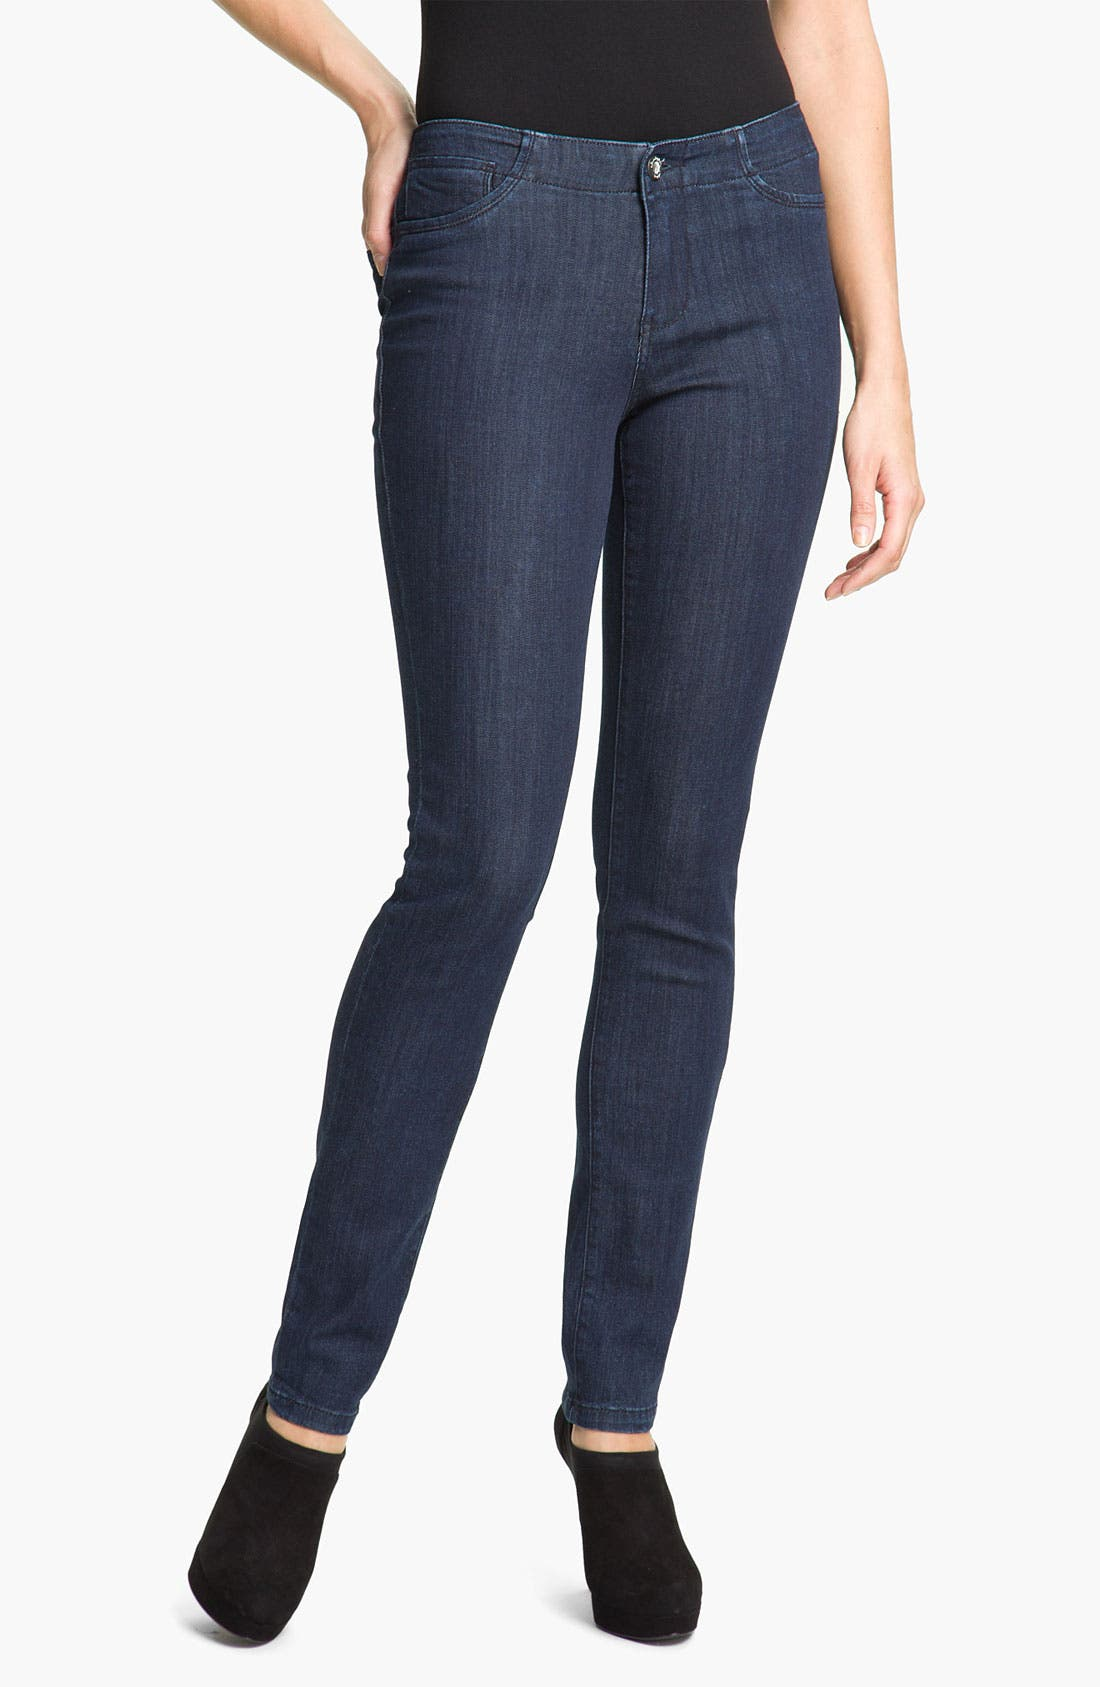 Alternate Image 1 Selected - Christopher Blue 'Angel' Skinny Stretch Jeans